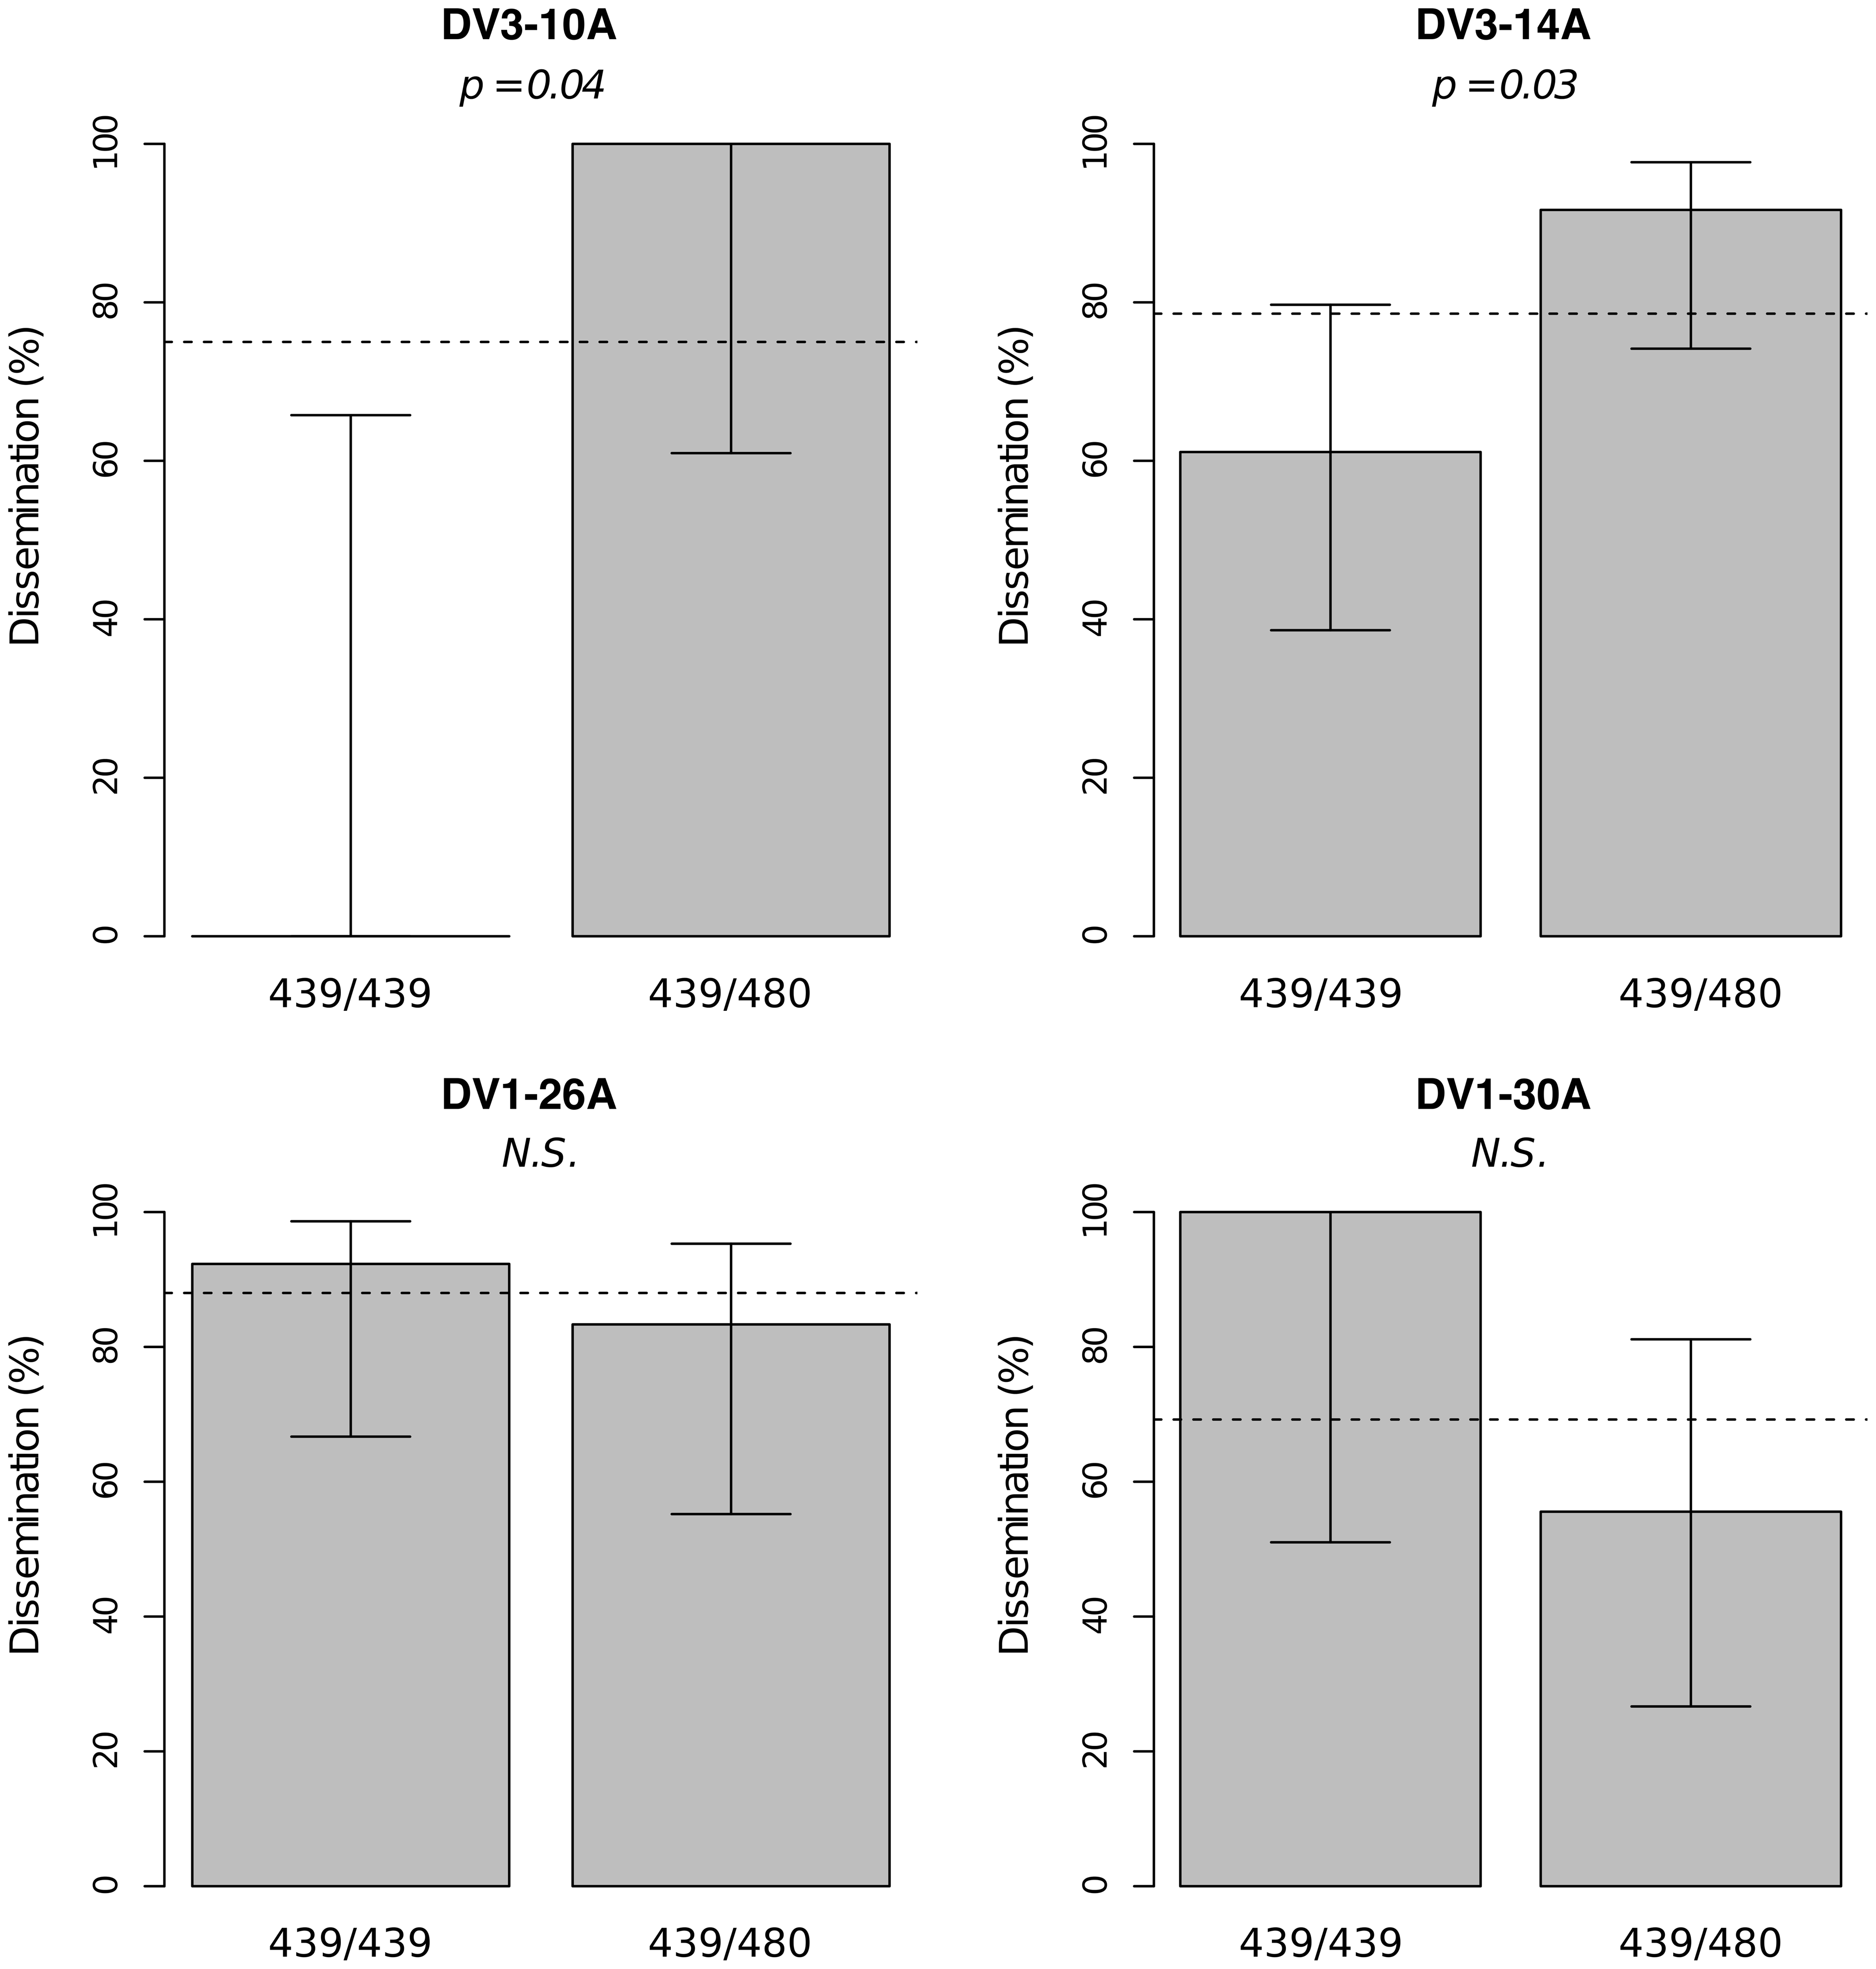 Isolate-specific association between marker 335CGA1 genotype and viral dissemination.